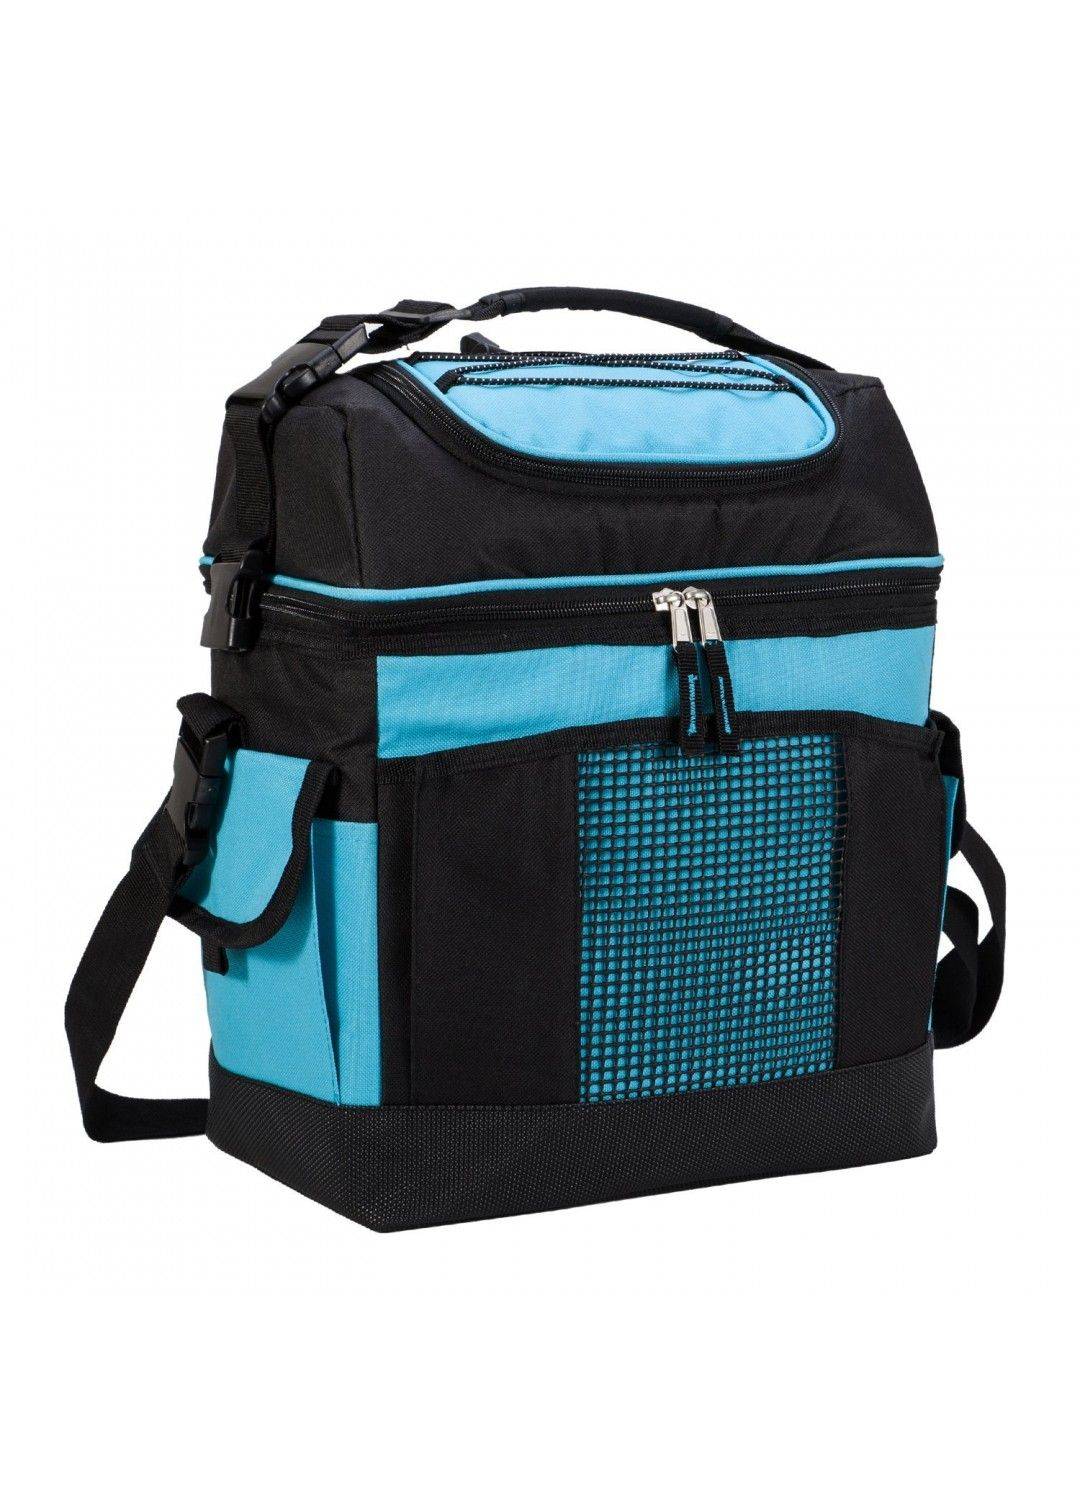 5ce225c86cc4 MIER 2 Compartment Cooler Bag Tote Large Insulated Lunch Bag for ...